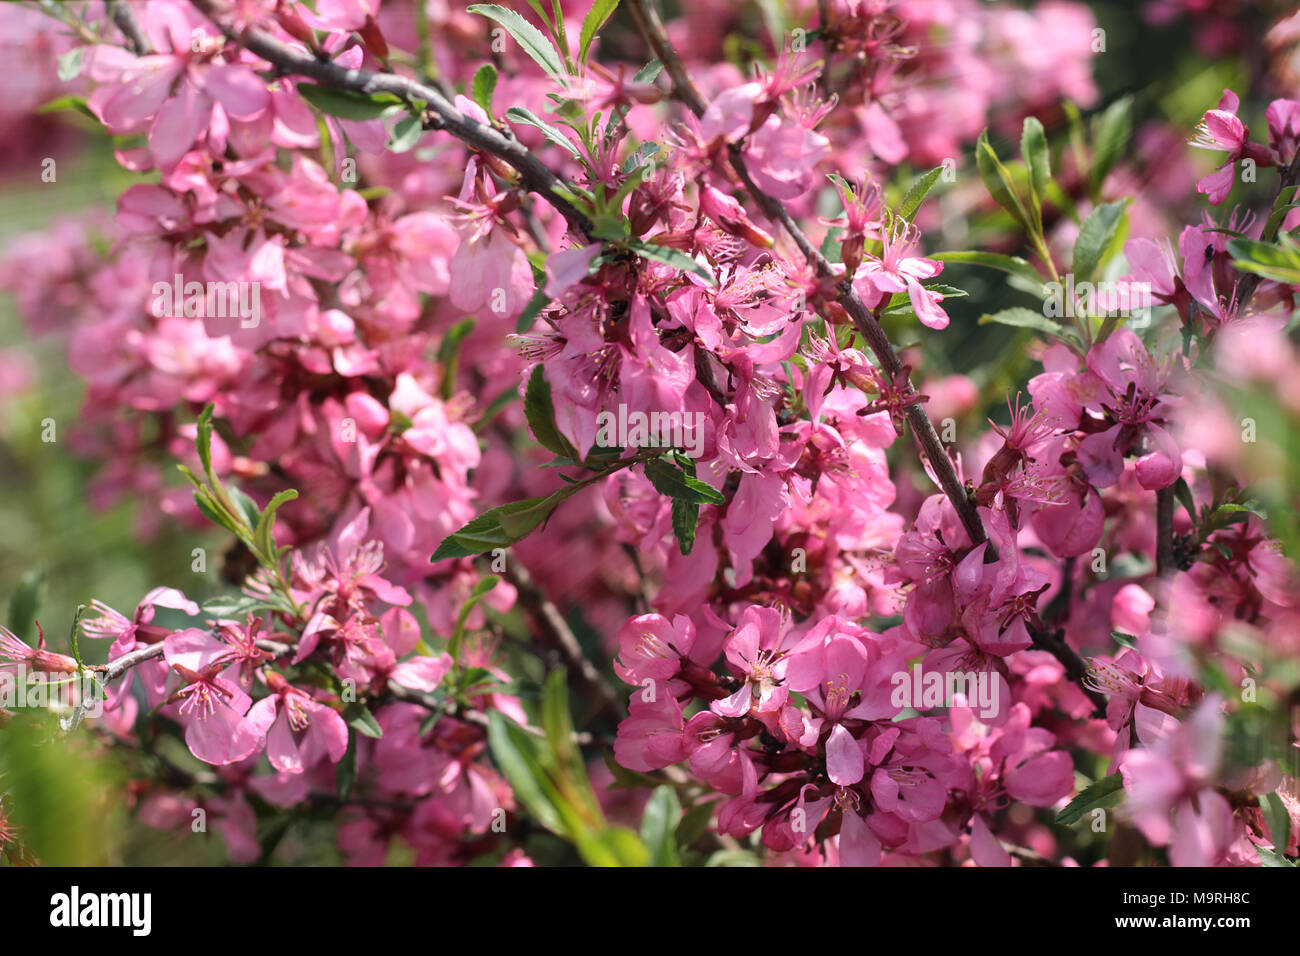 Small Pink Flowers Bush Sunlight Stock Photo 178154044 Alamy